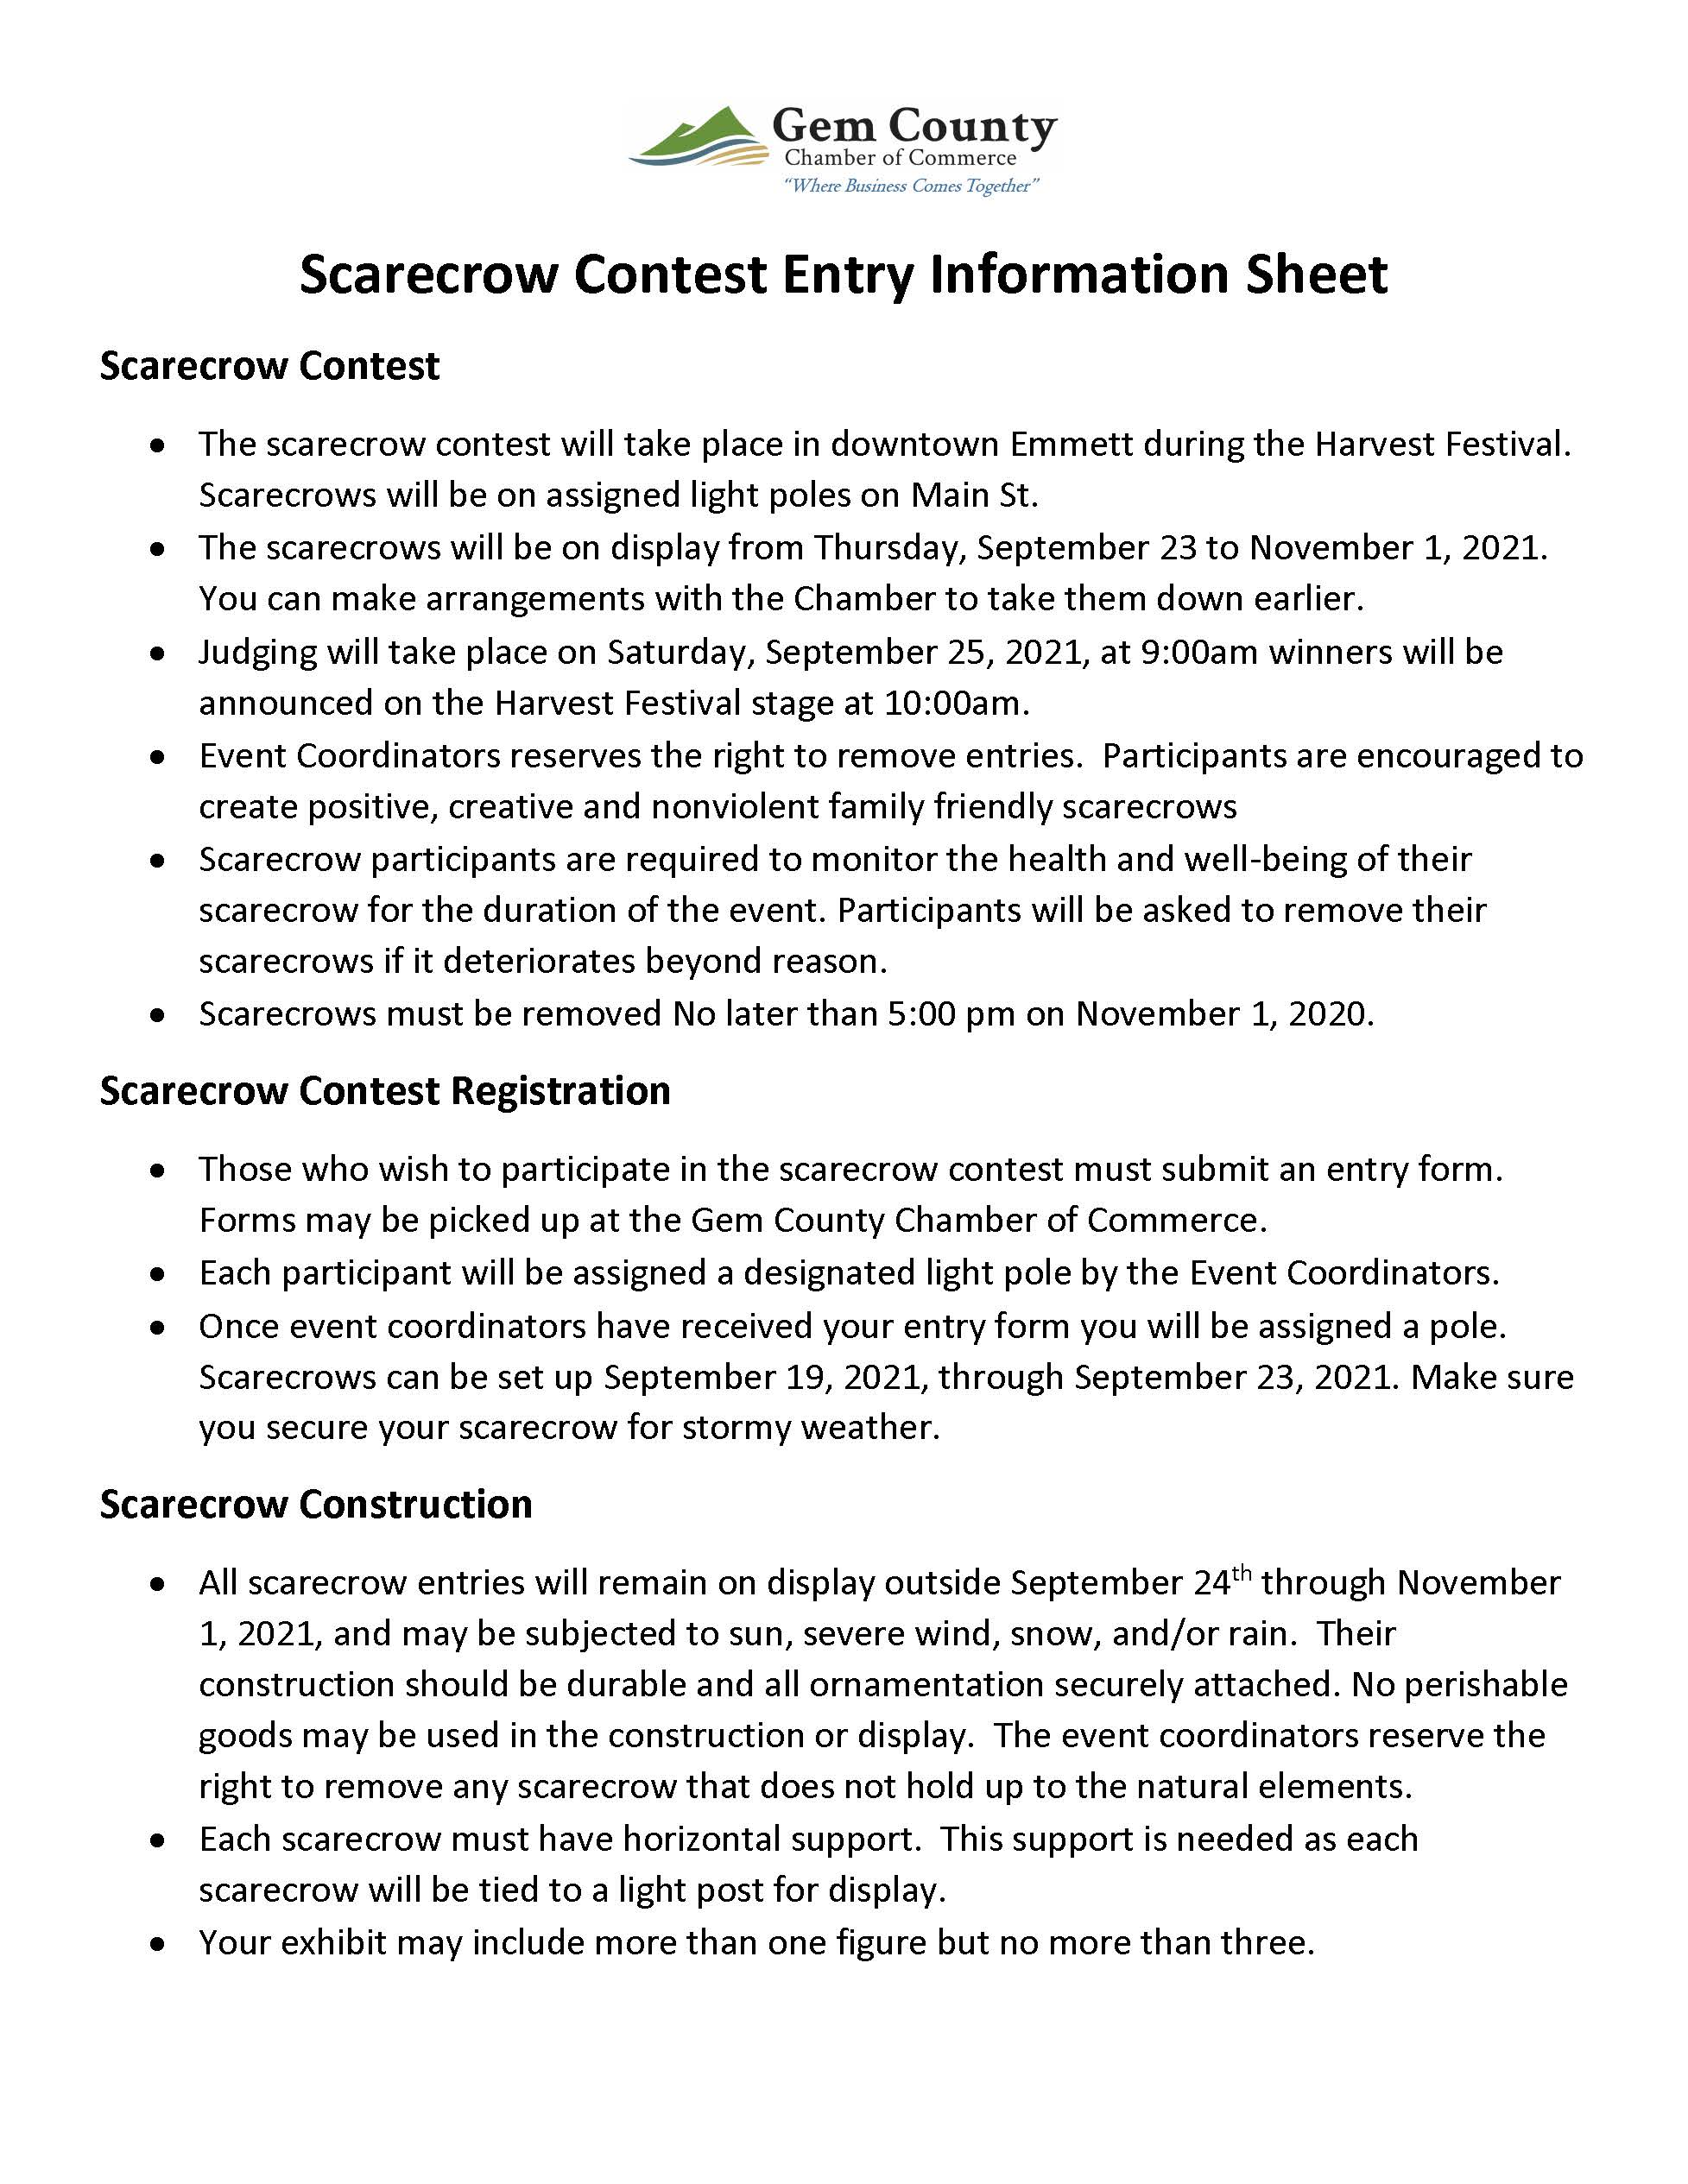 Scarecrow Contest Rules Final